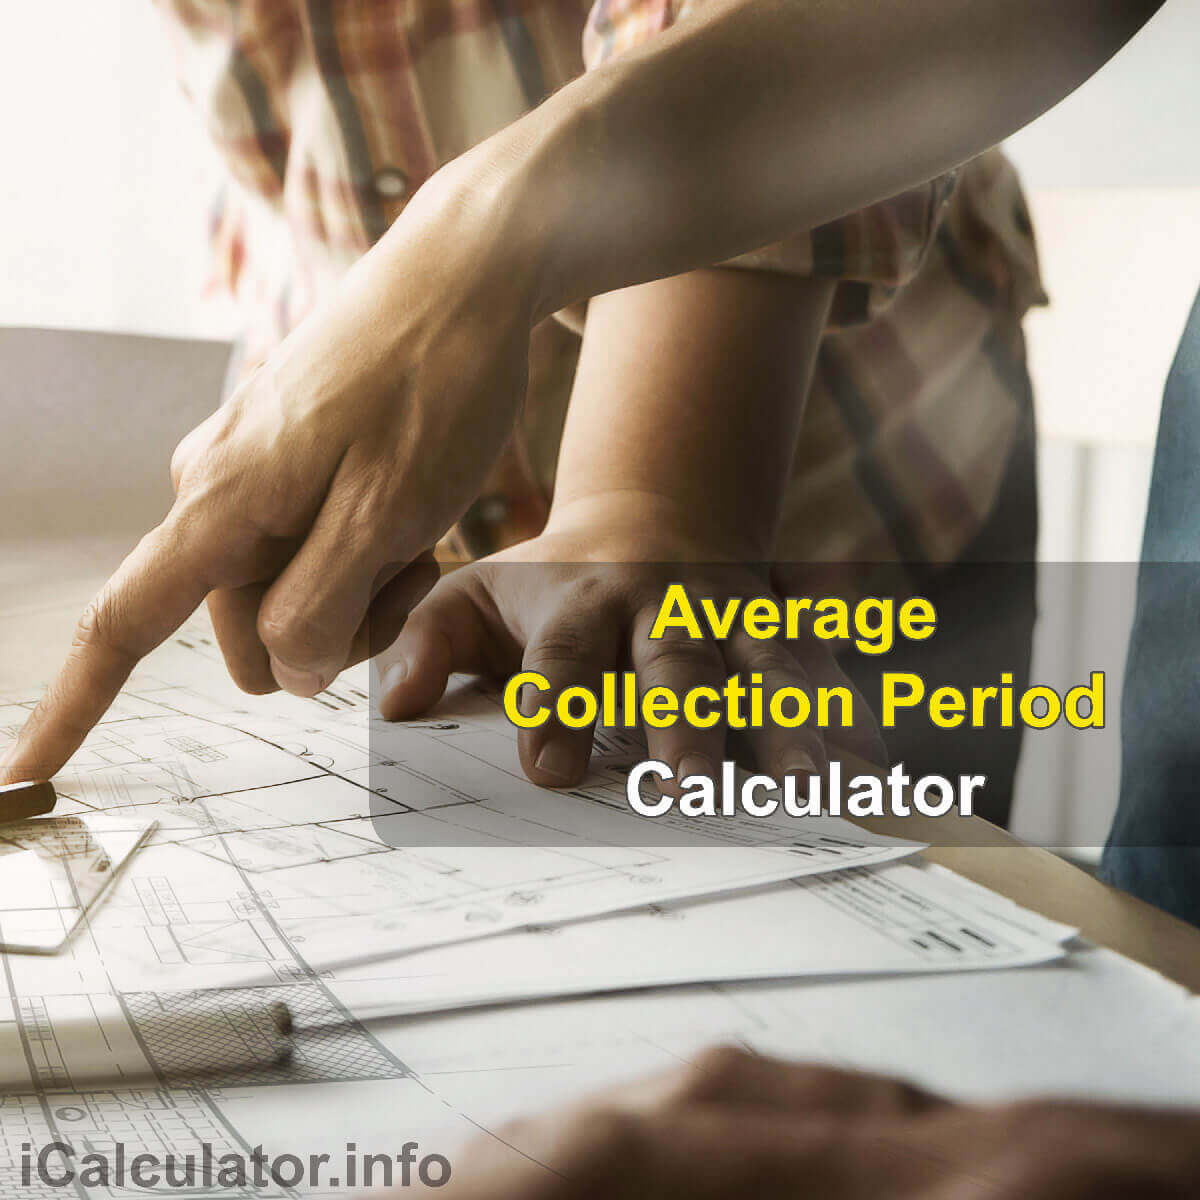 Average Collection Period Calculator. This image provides details of how to calculate the Average Collection Period Ratio using a calculator and notepad. By using the Average Collection Period Ratio formula, the ACP Calculator provides a true calculation of the amount of time a business takes to receive the funds from its customers after making the actual sale